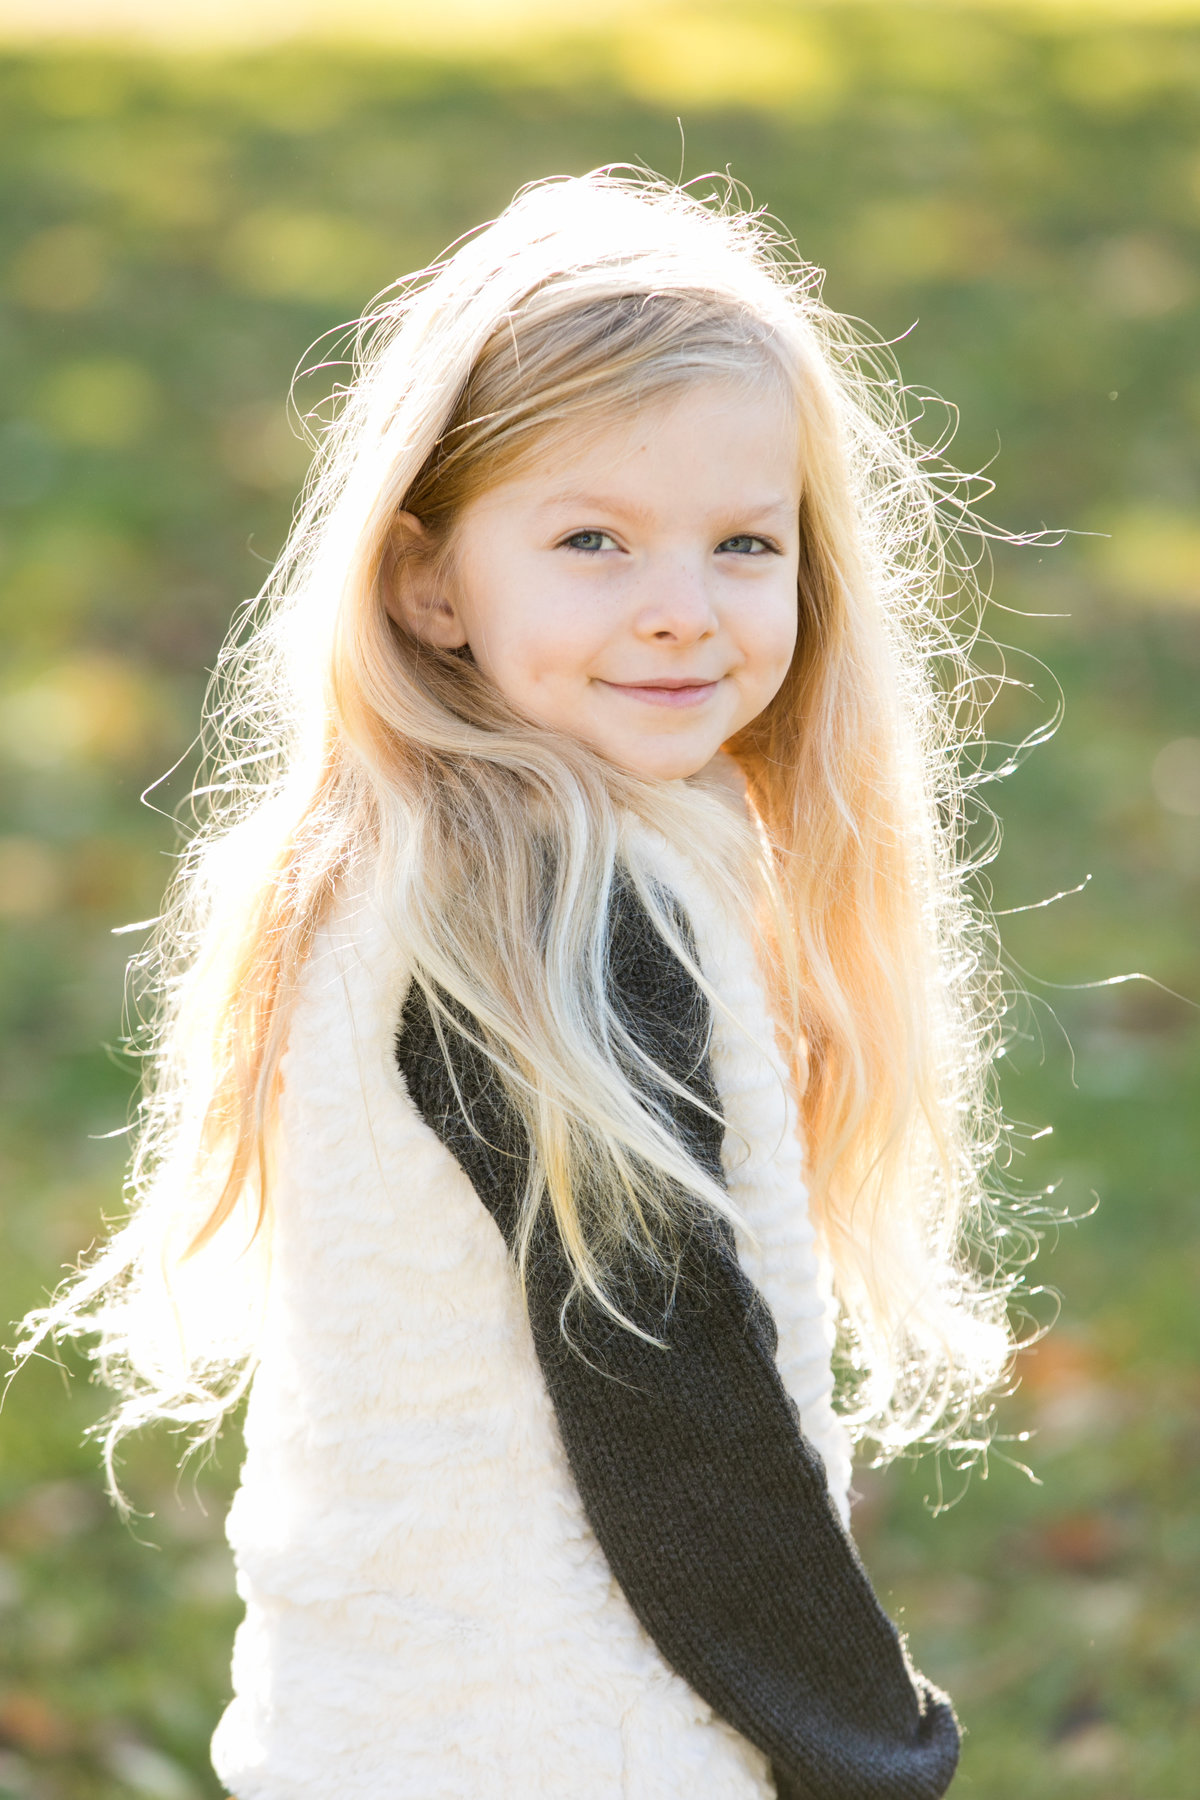 Maryland Child Portrait Photography